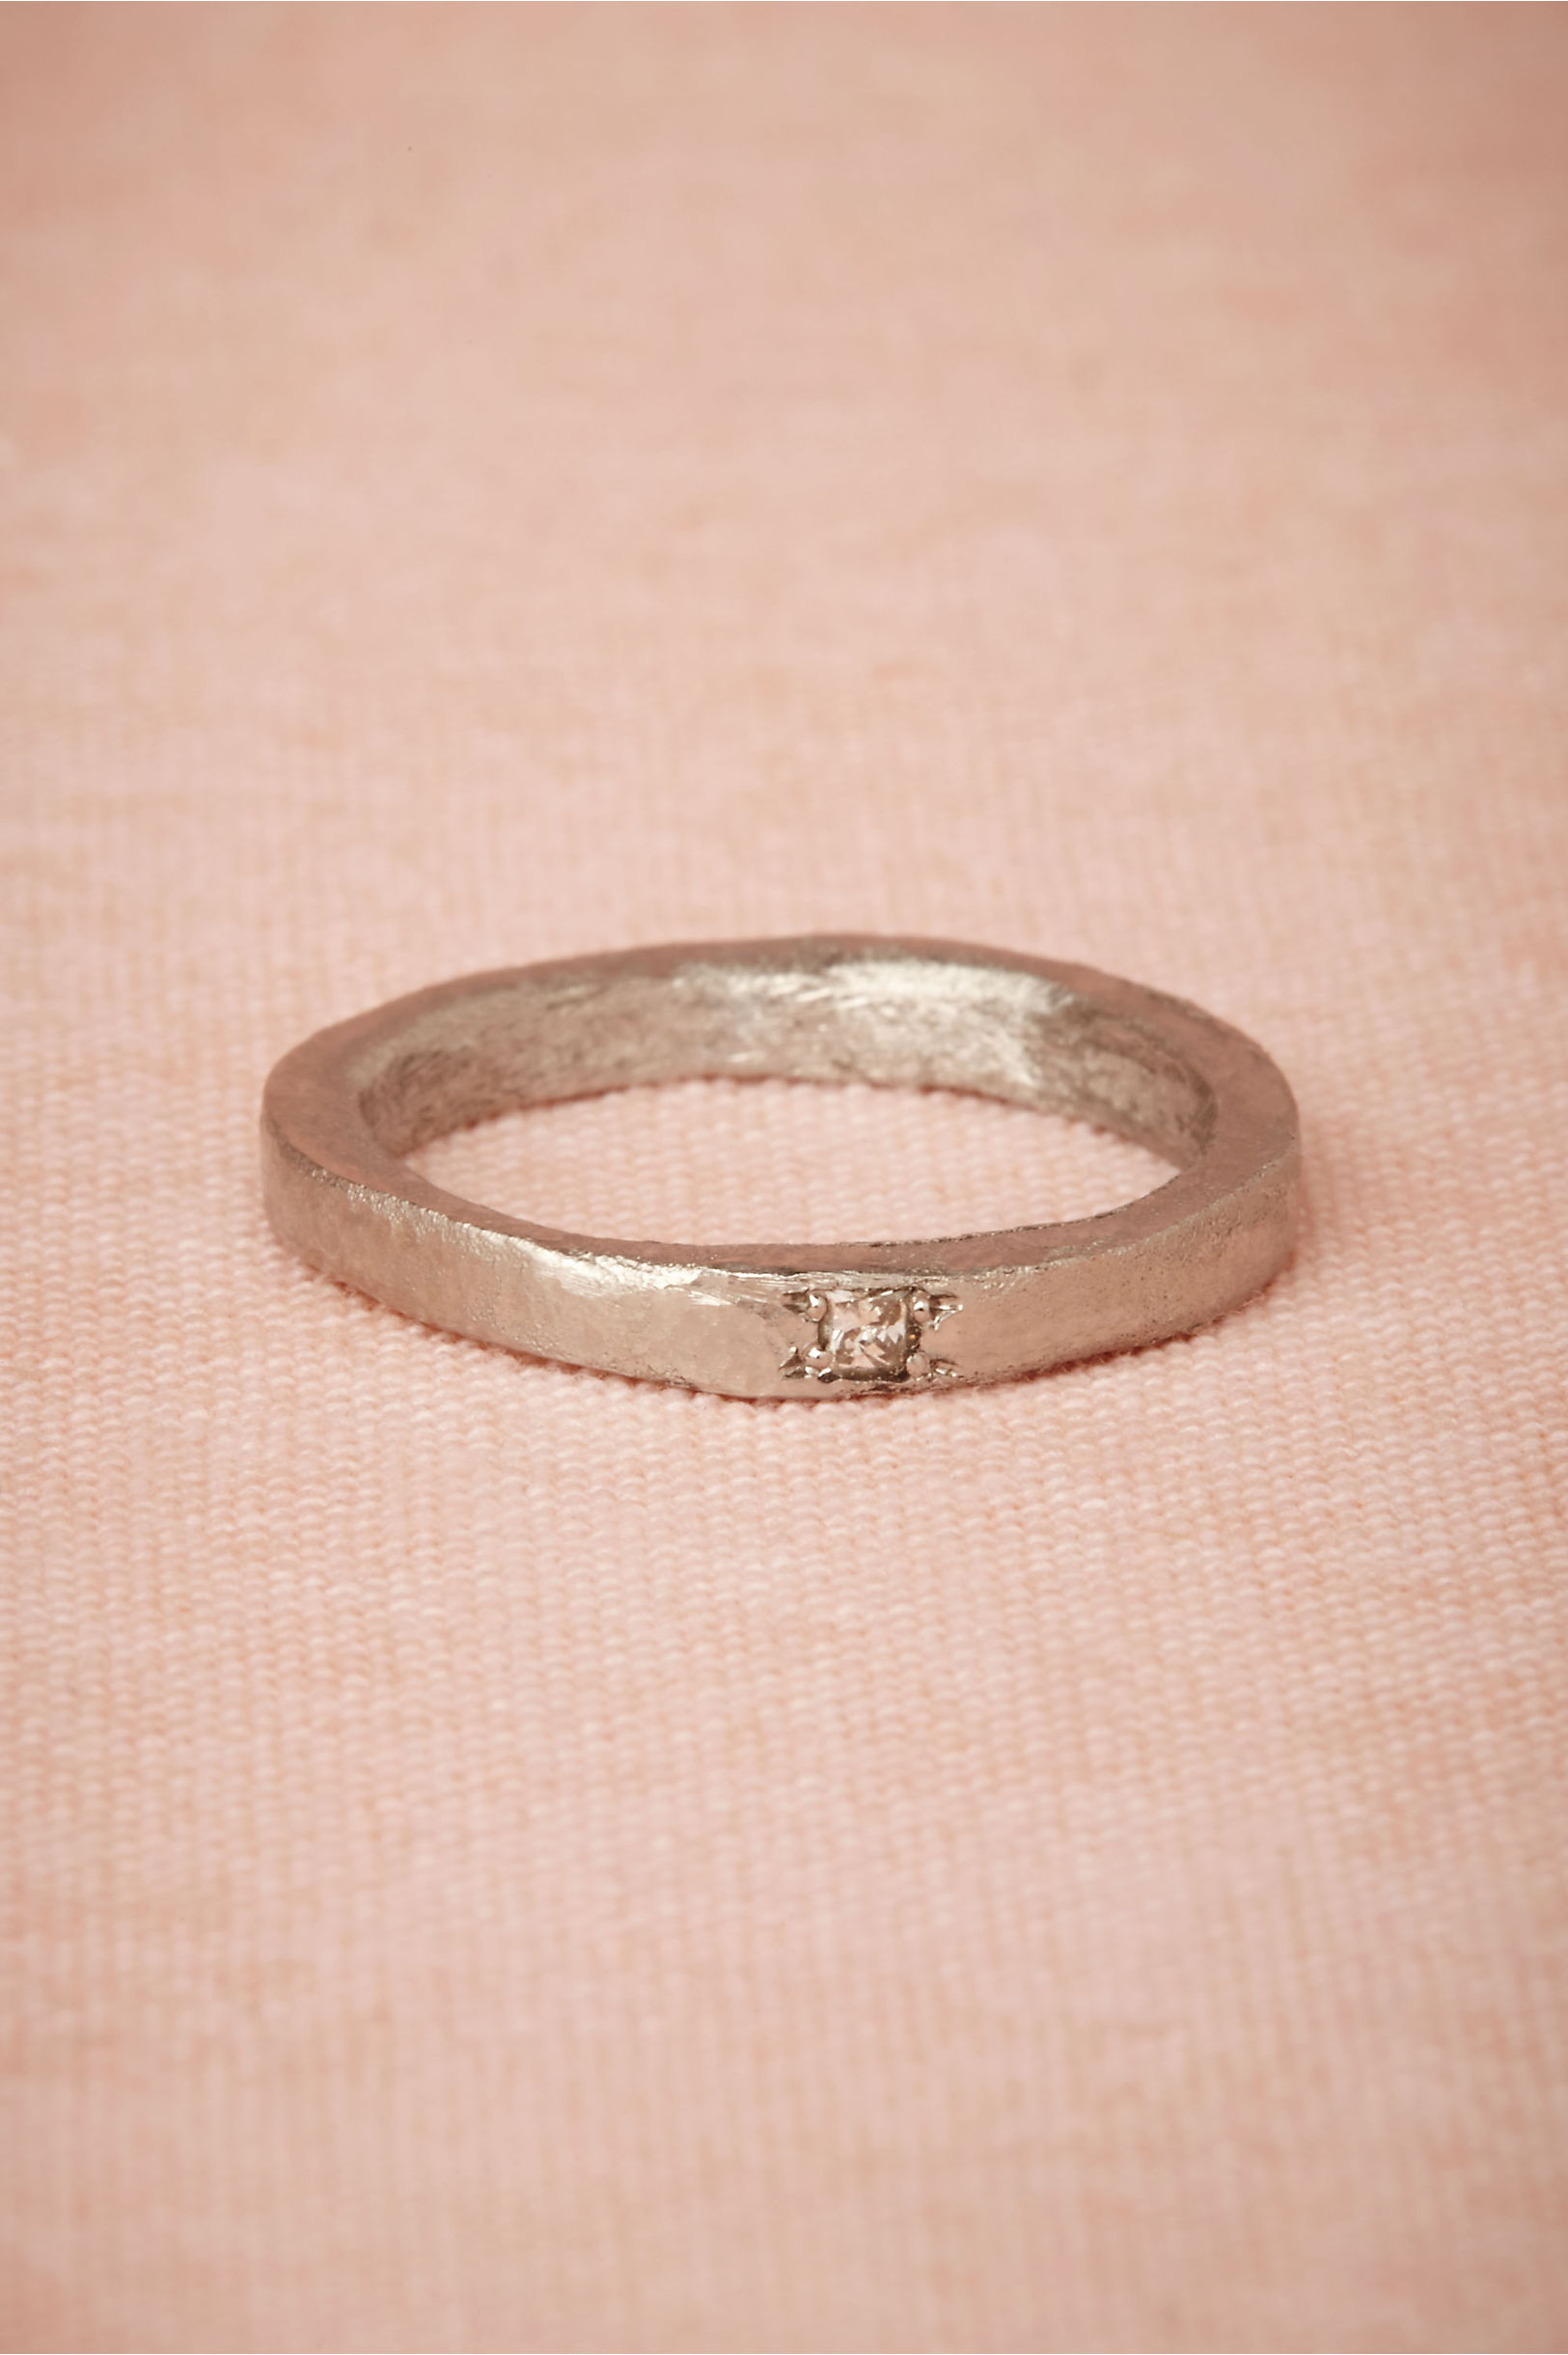 Carina Ring in New | BHLDN